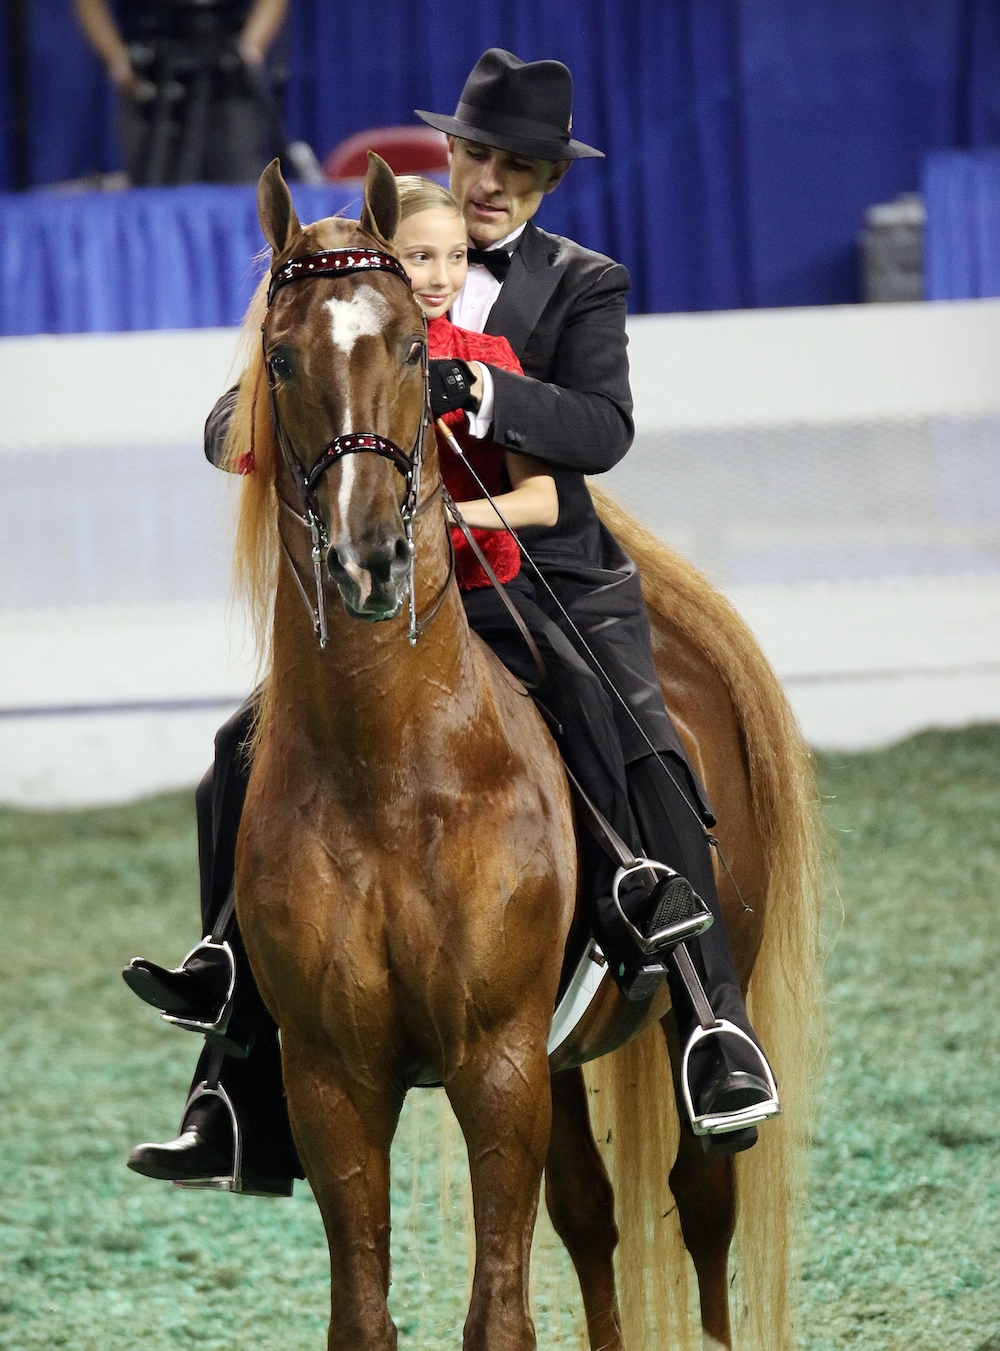 Marc during his retirement ceremony on Friday night of the World's Championship Horse Show, with Lionel and young fan Ella Herrin. Photo by Julia Shelburne-Hitti.